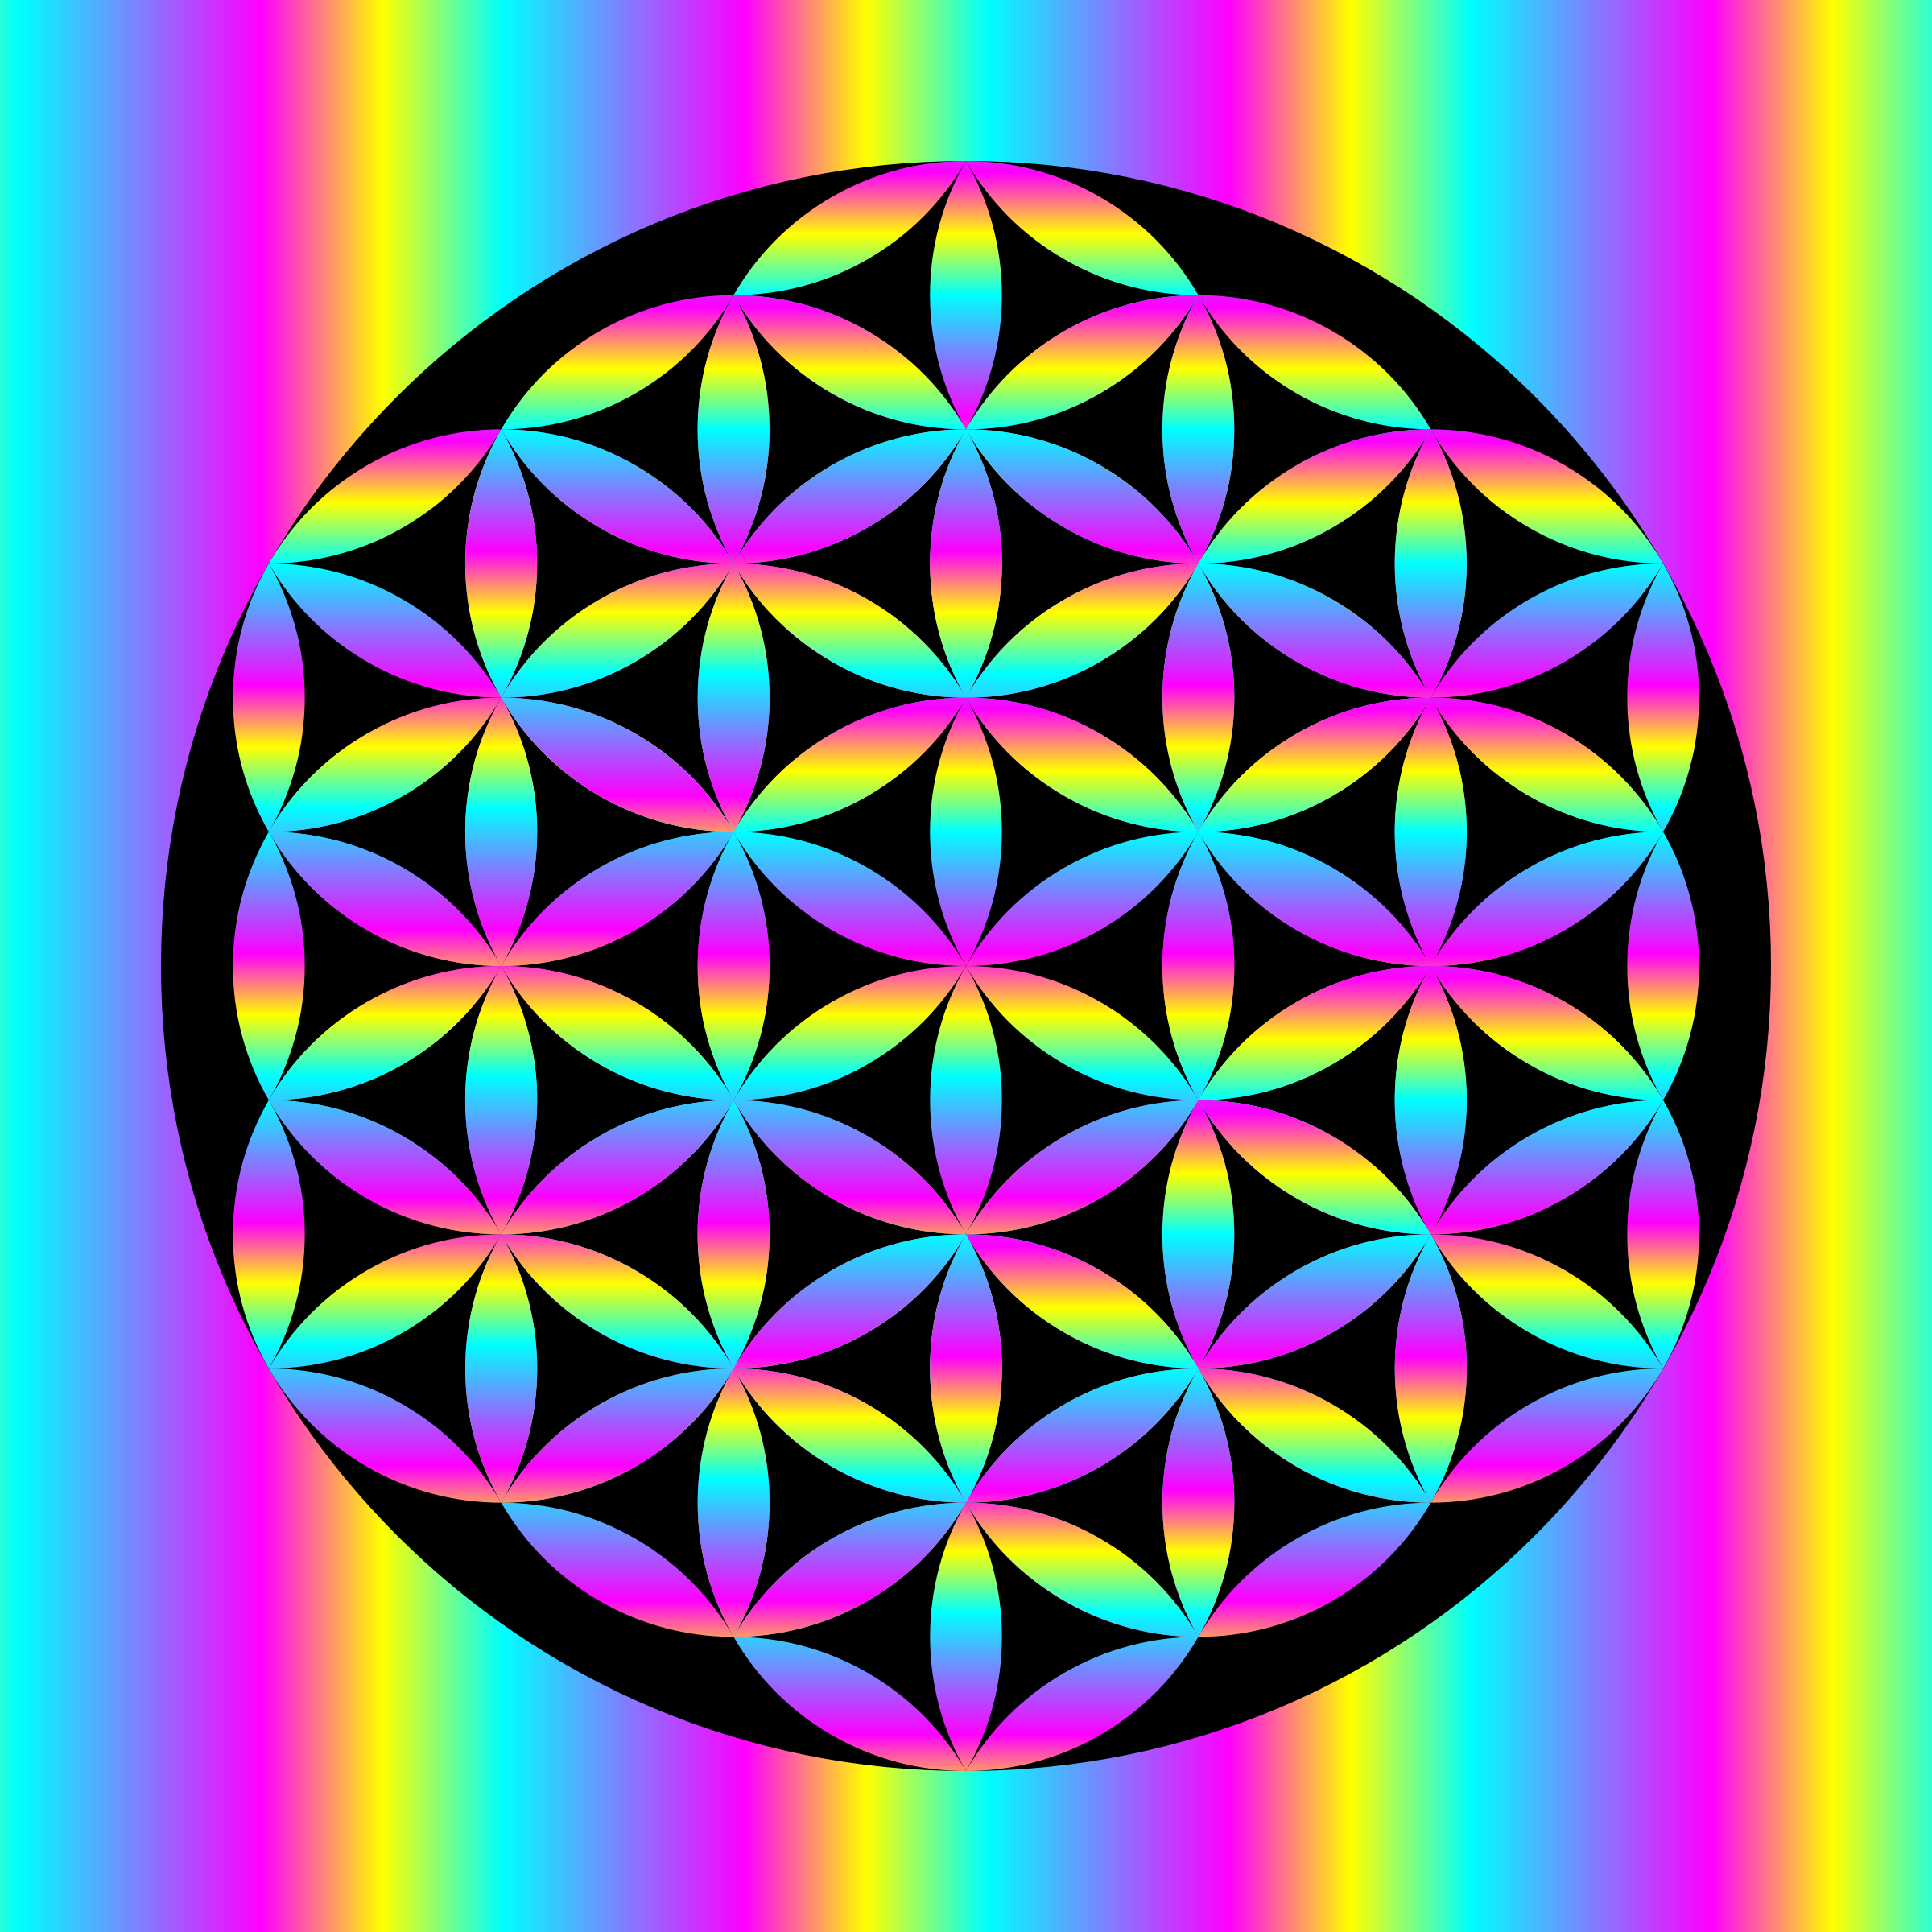 YCM Rainbow Flower of Life in Black Circle by 10binary